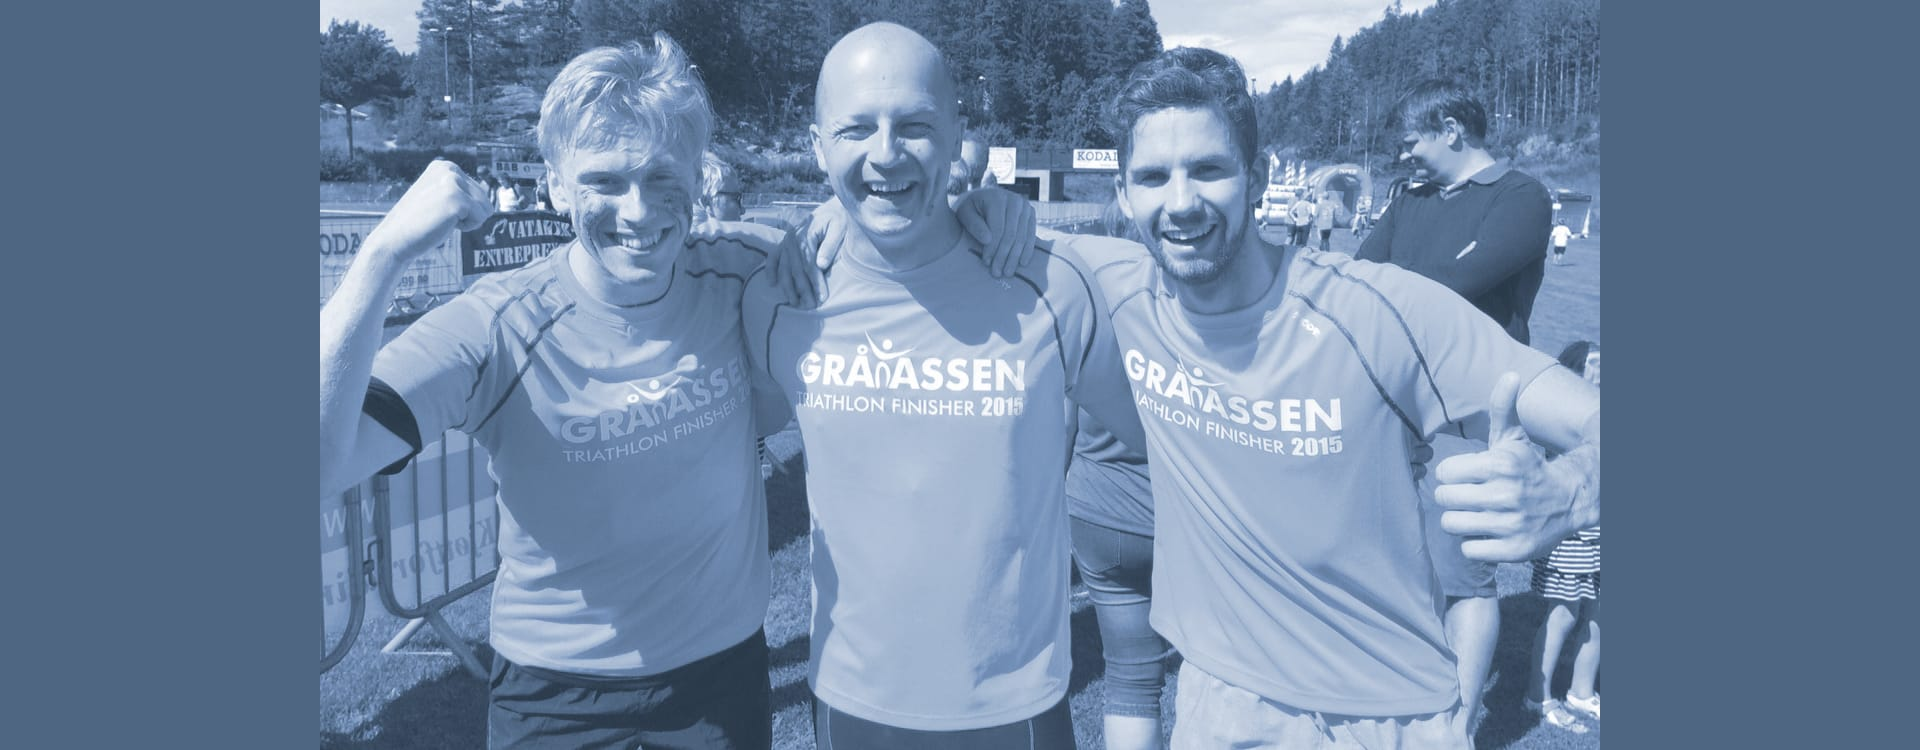 Happy Finishers - Gråtassen